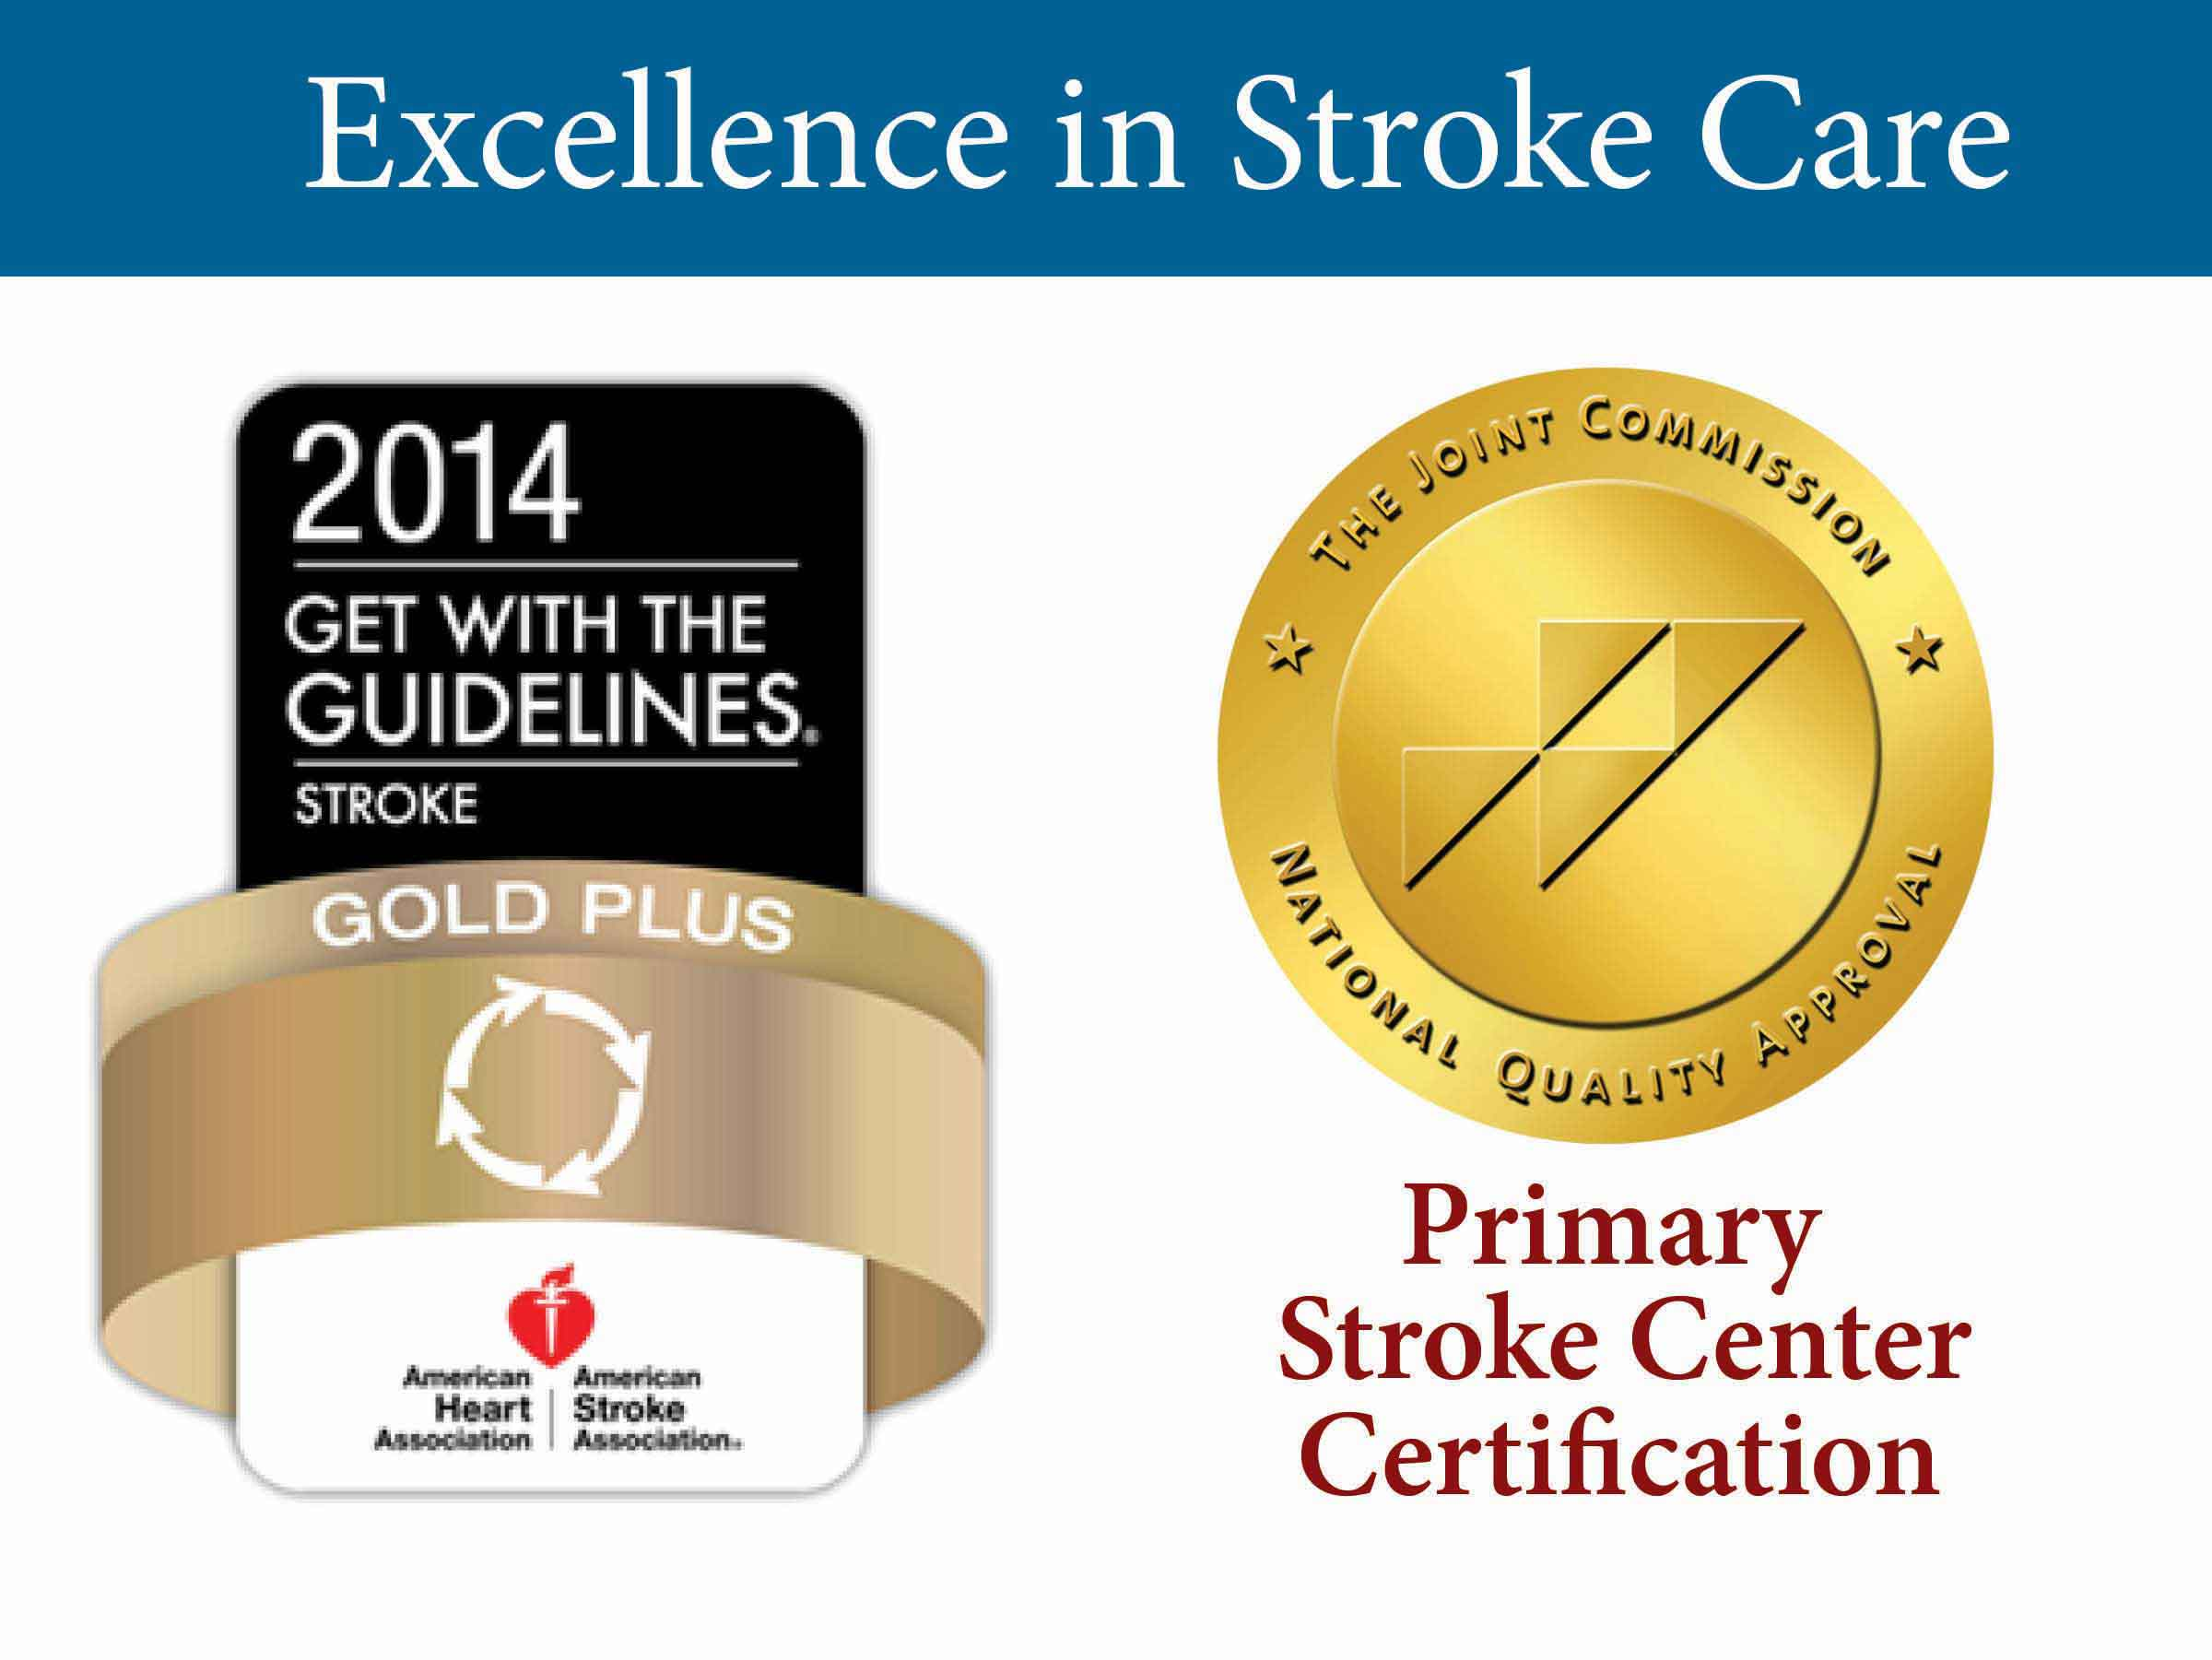 photo of stroke care excellence award